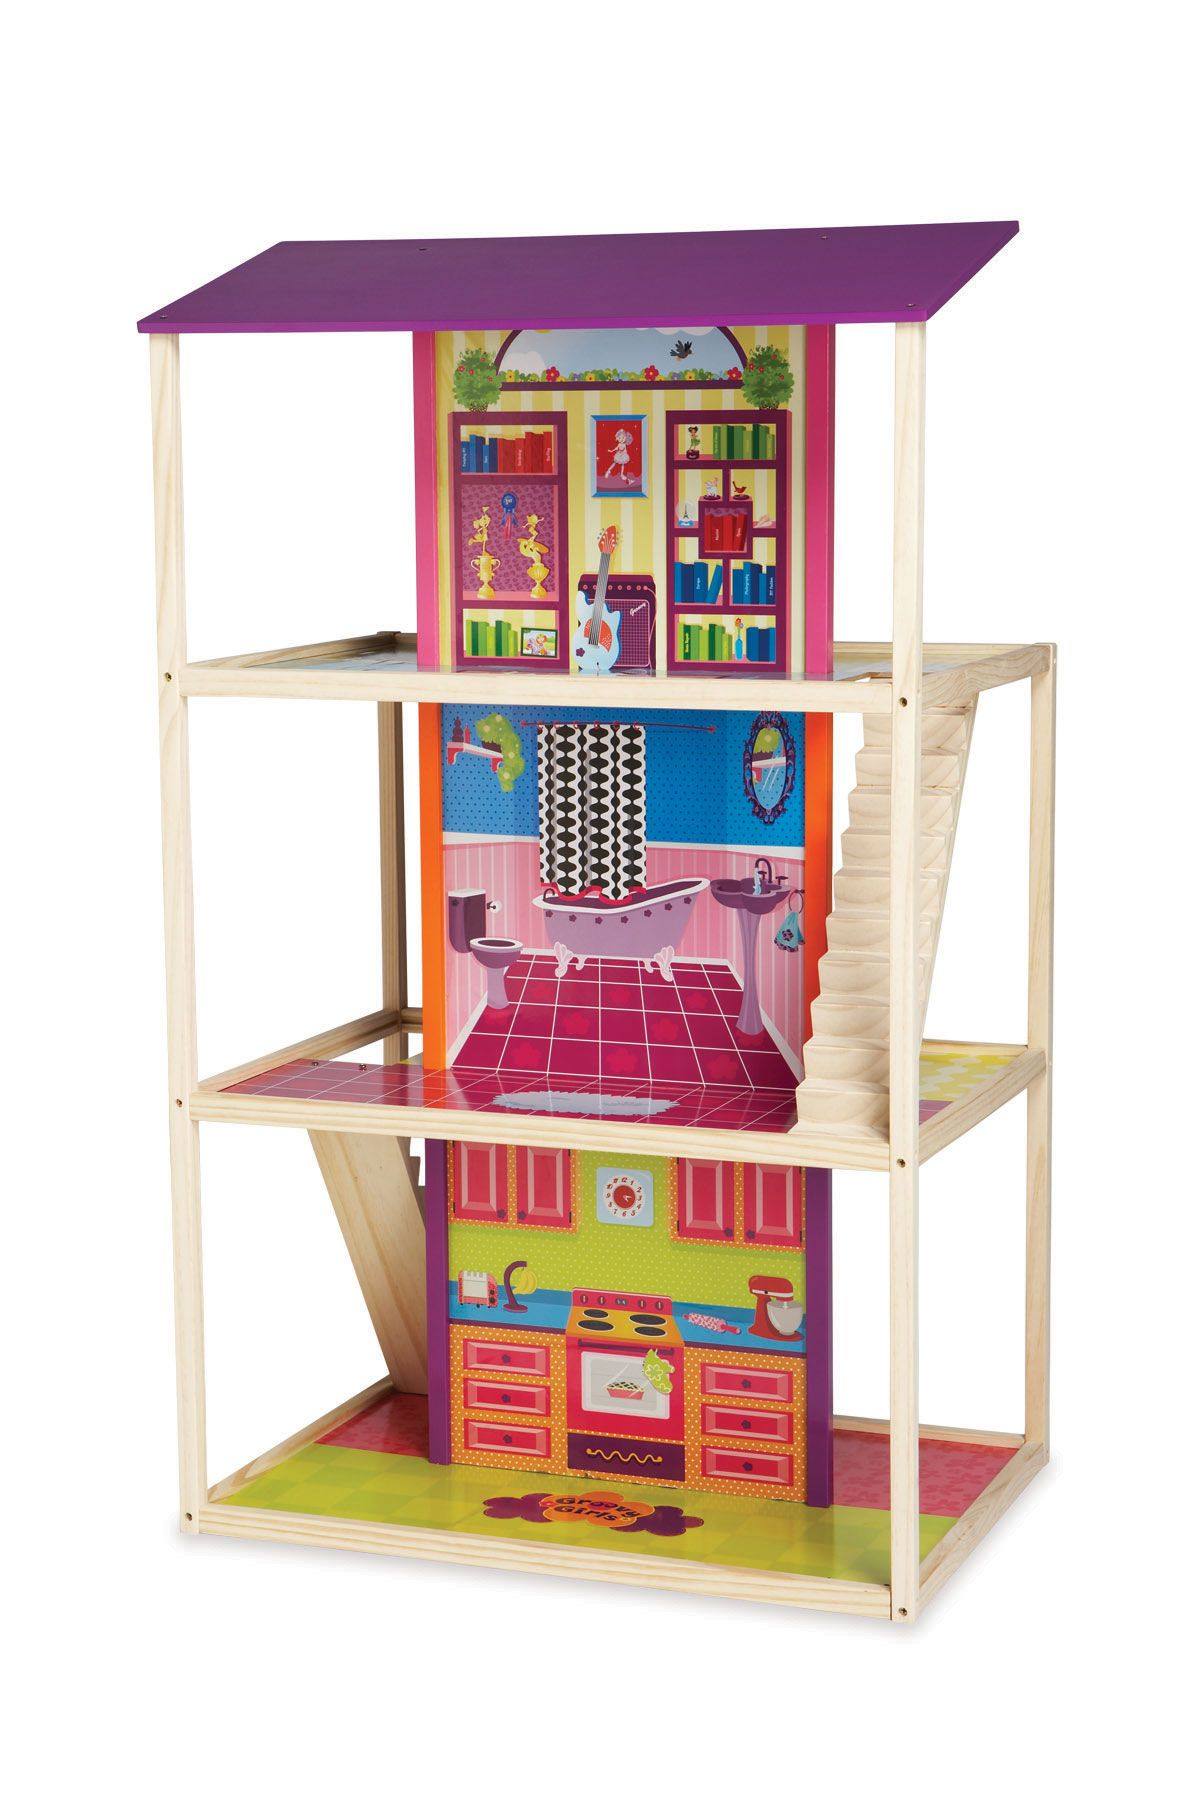 Groovy Girls Hip Happenin House - Manhattan Toy